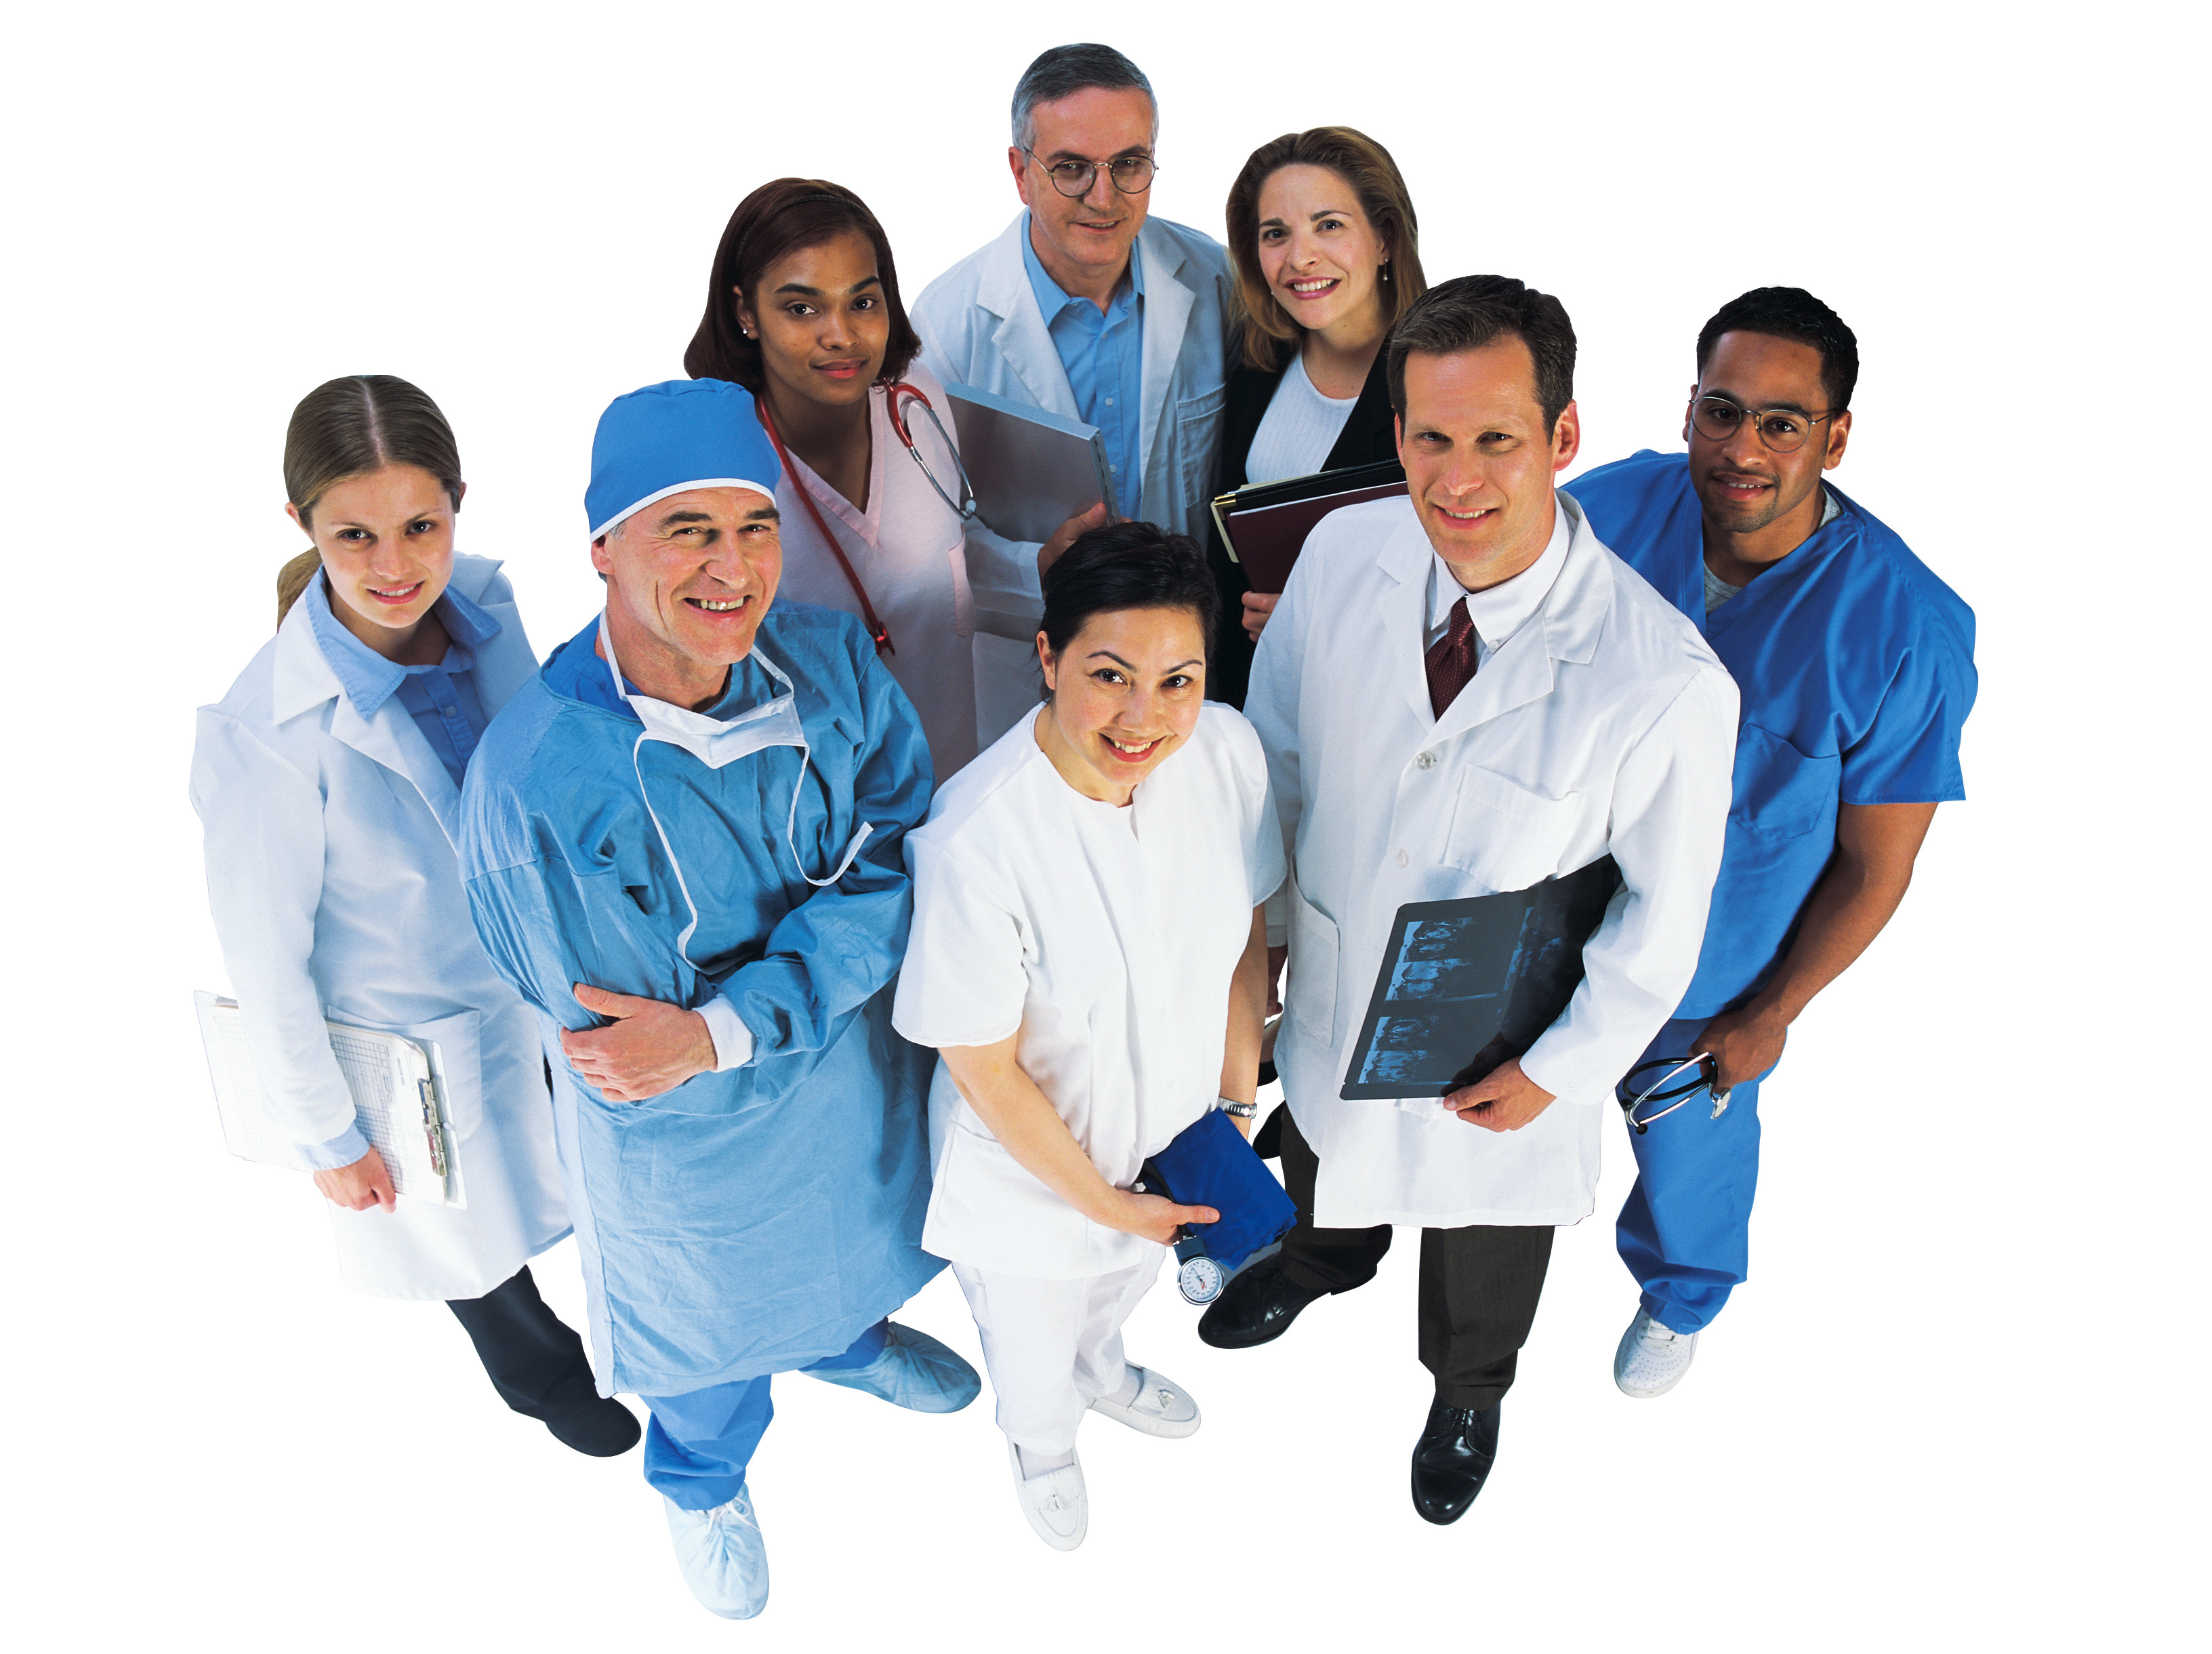 a comparison of professions of doctors and nurses in the medical field Nurses ranked #1 most ethical profession by 2017 gallup poll medical field, including nurses, medical doctors nurses soar above all other professions.